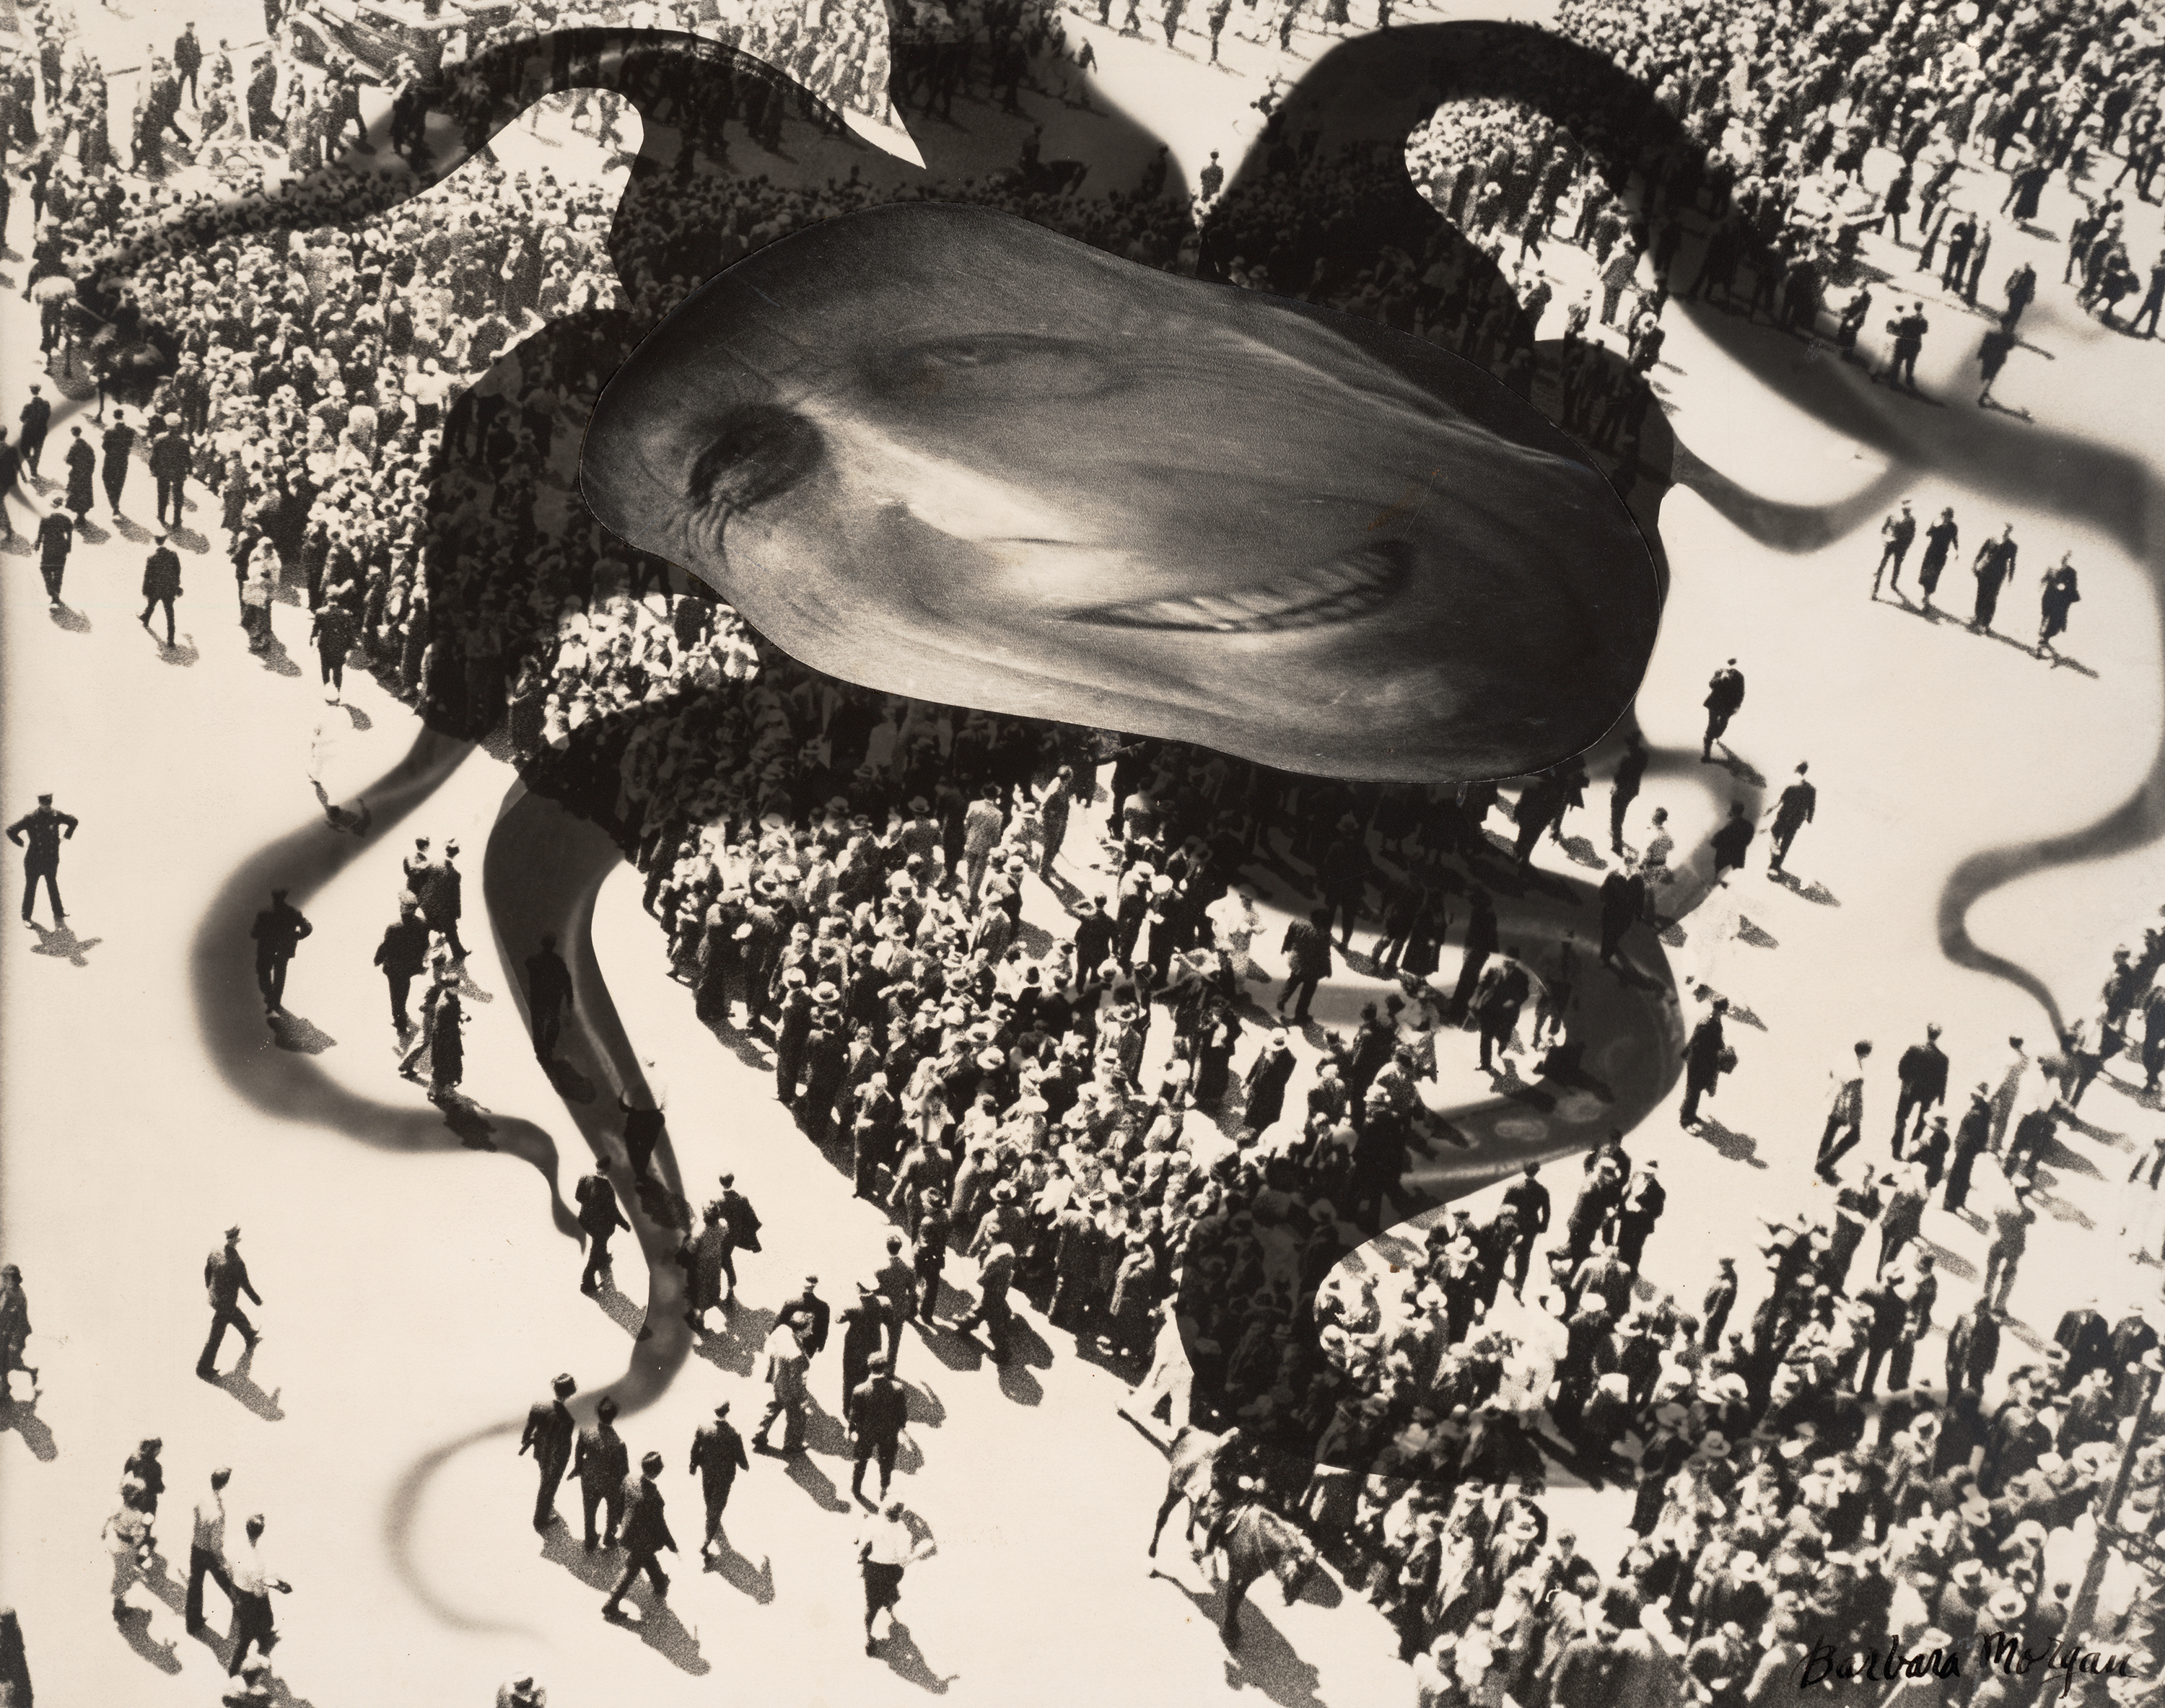 Hearst over the People, 1939 (Barbara Morgan)